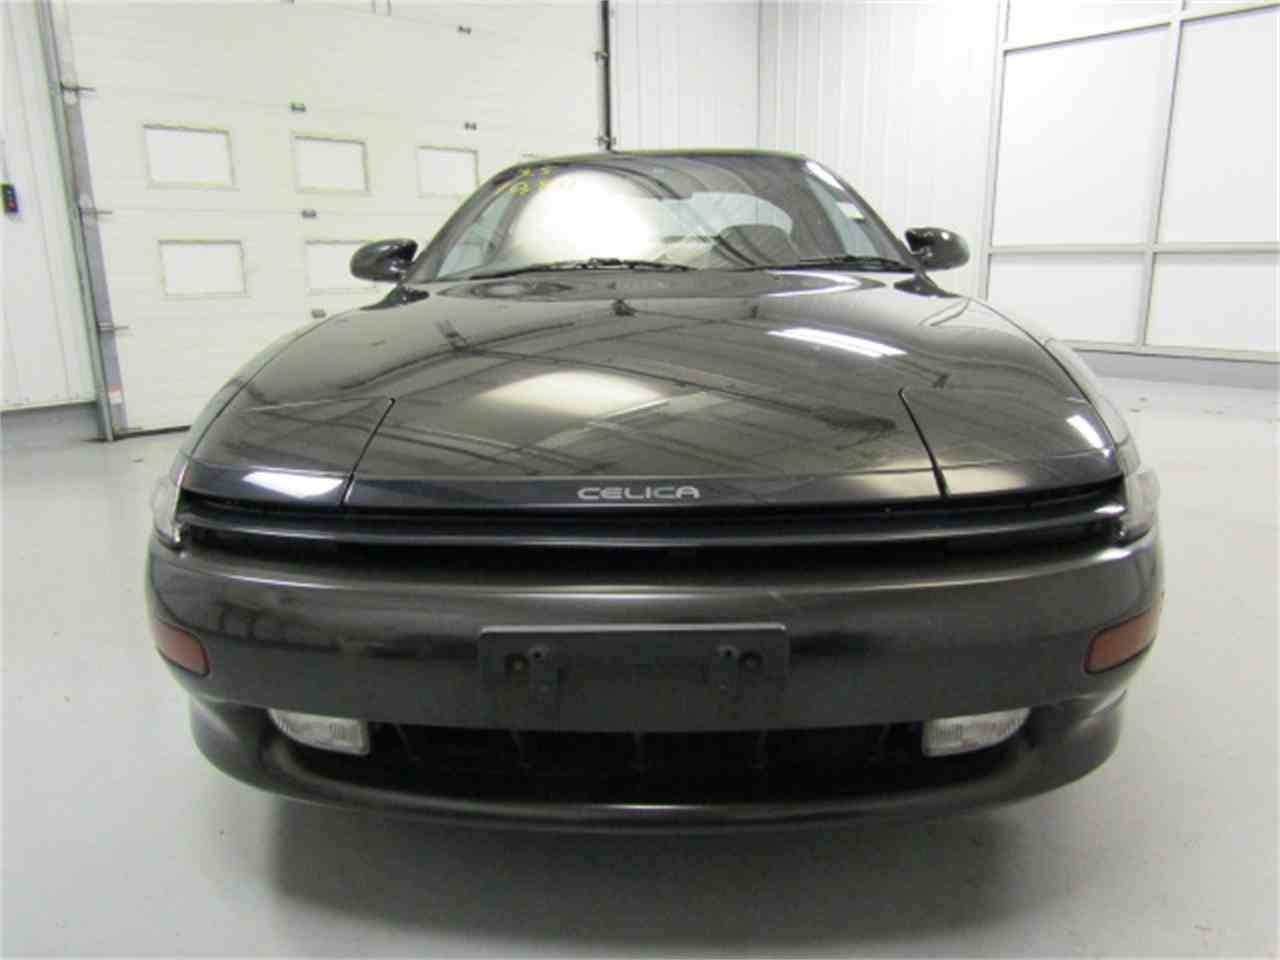 Large Picture of '89 Toyota Celica - $10,831.00 Offered by Duncan Imports & Classic Cars - JM31